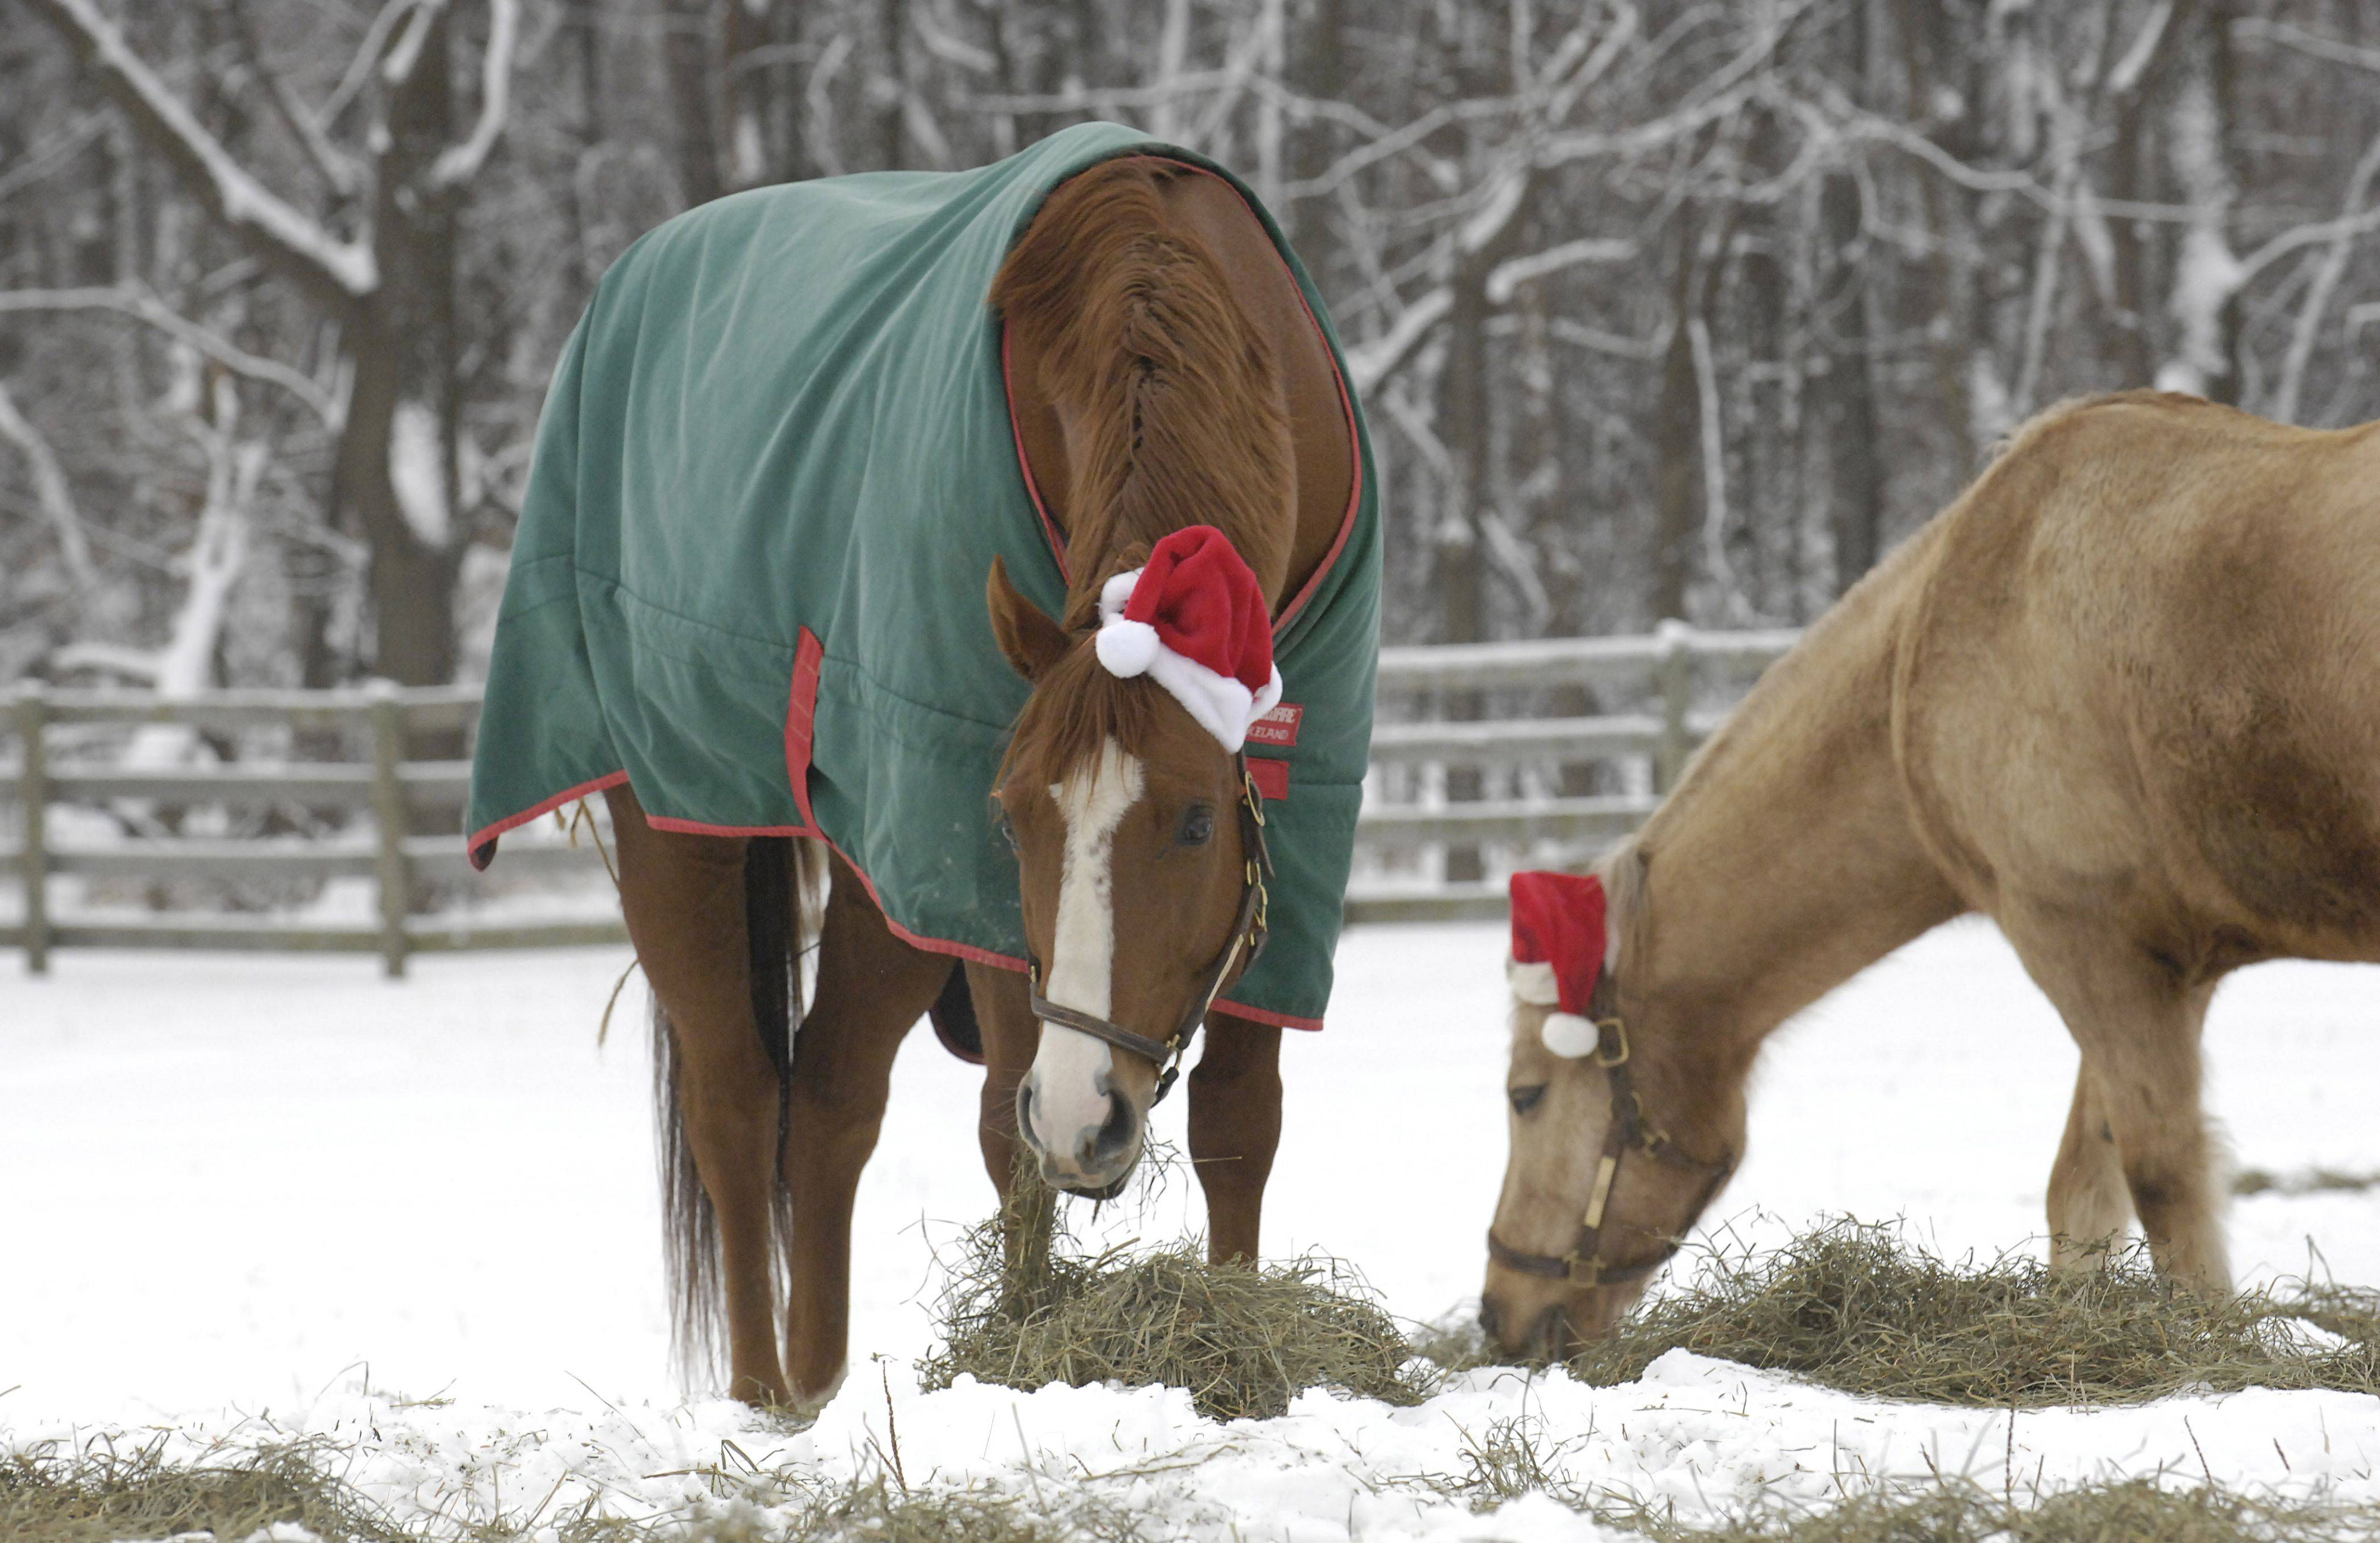 Lobizon and Doc munch on hay while wearing their Santa hats Saturday at Canterfield Farm in West Dundee on Christmas Day. The farm's horses started wearing the hats on Christmas Day six years ago.